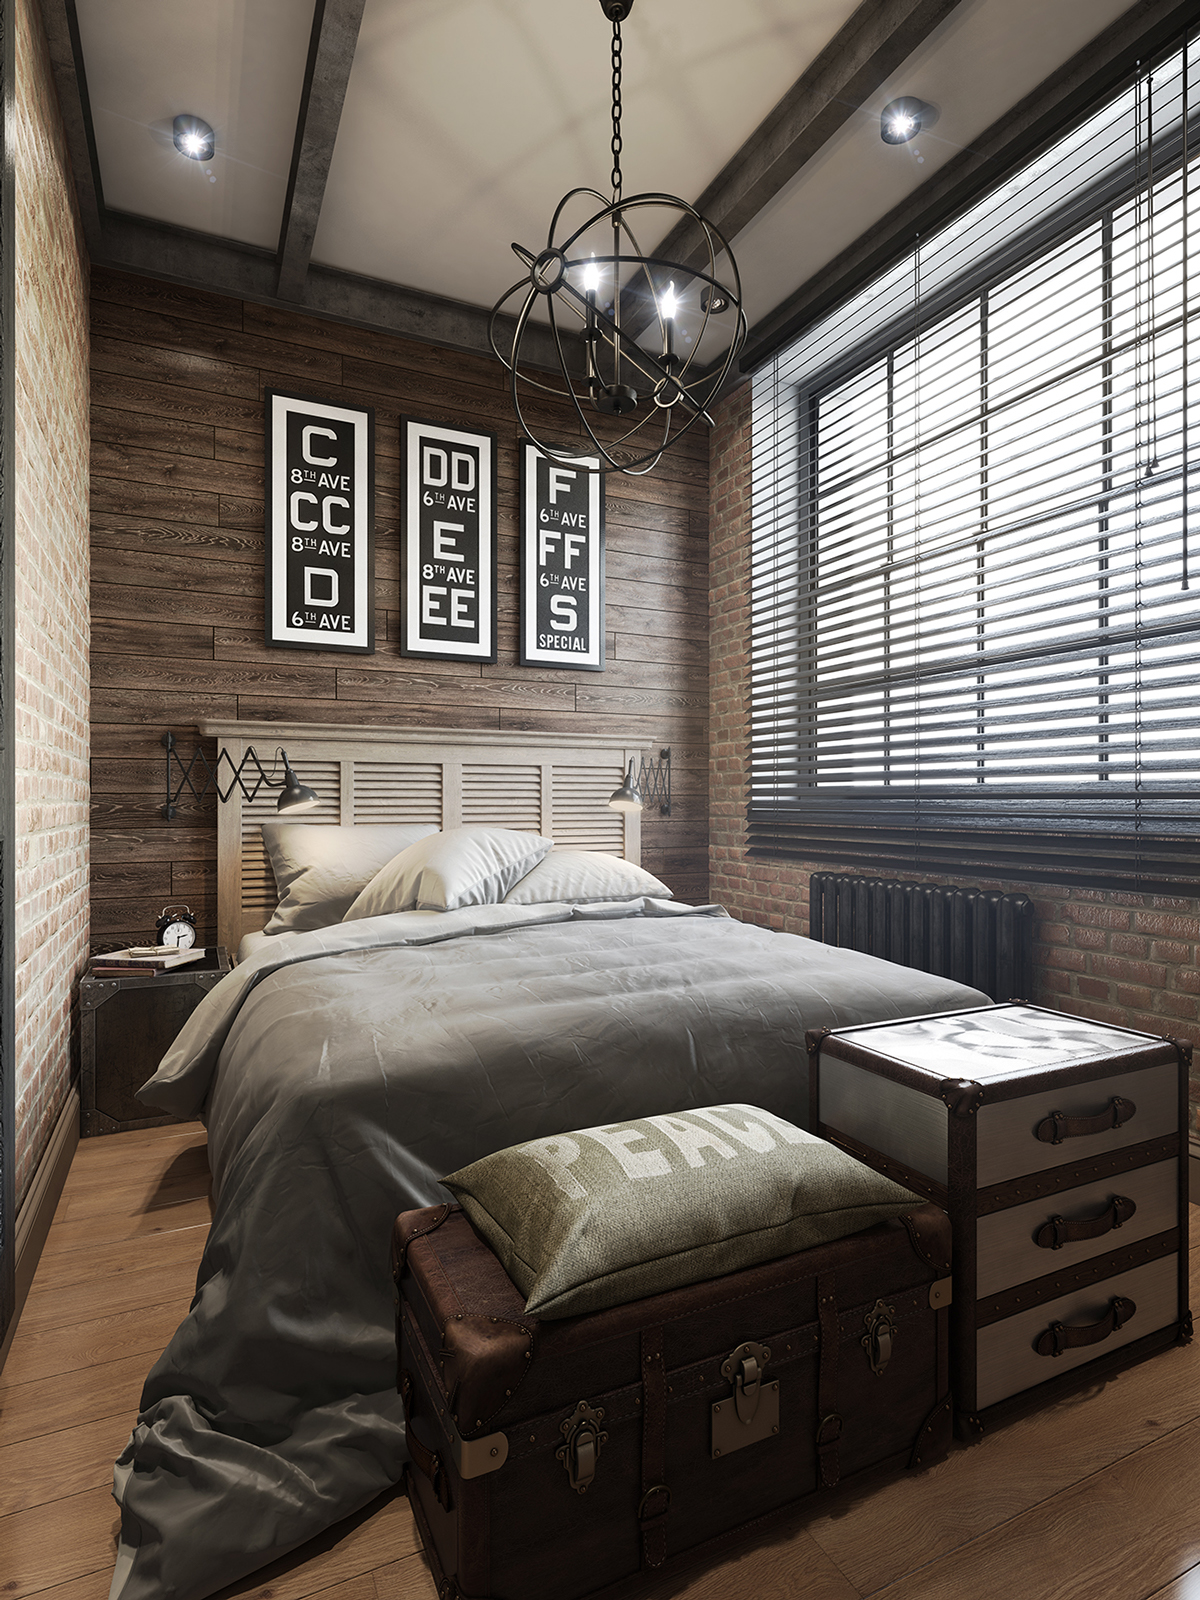 Rooms With Wood Panel Walls: Three Dark Colored Loft Apartments With Exposed Brick Walls